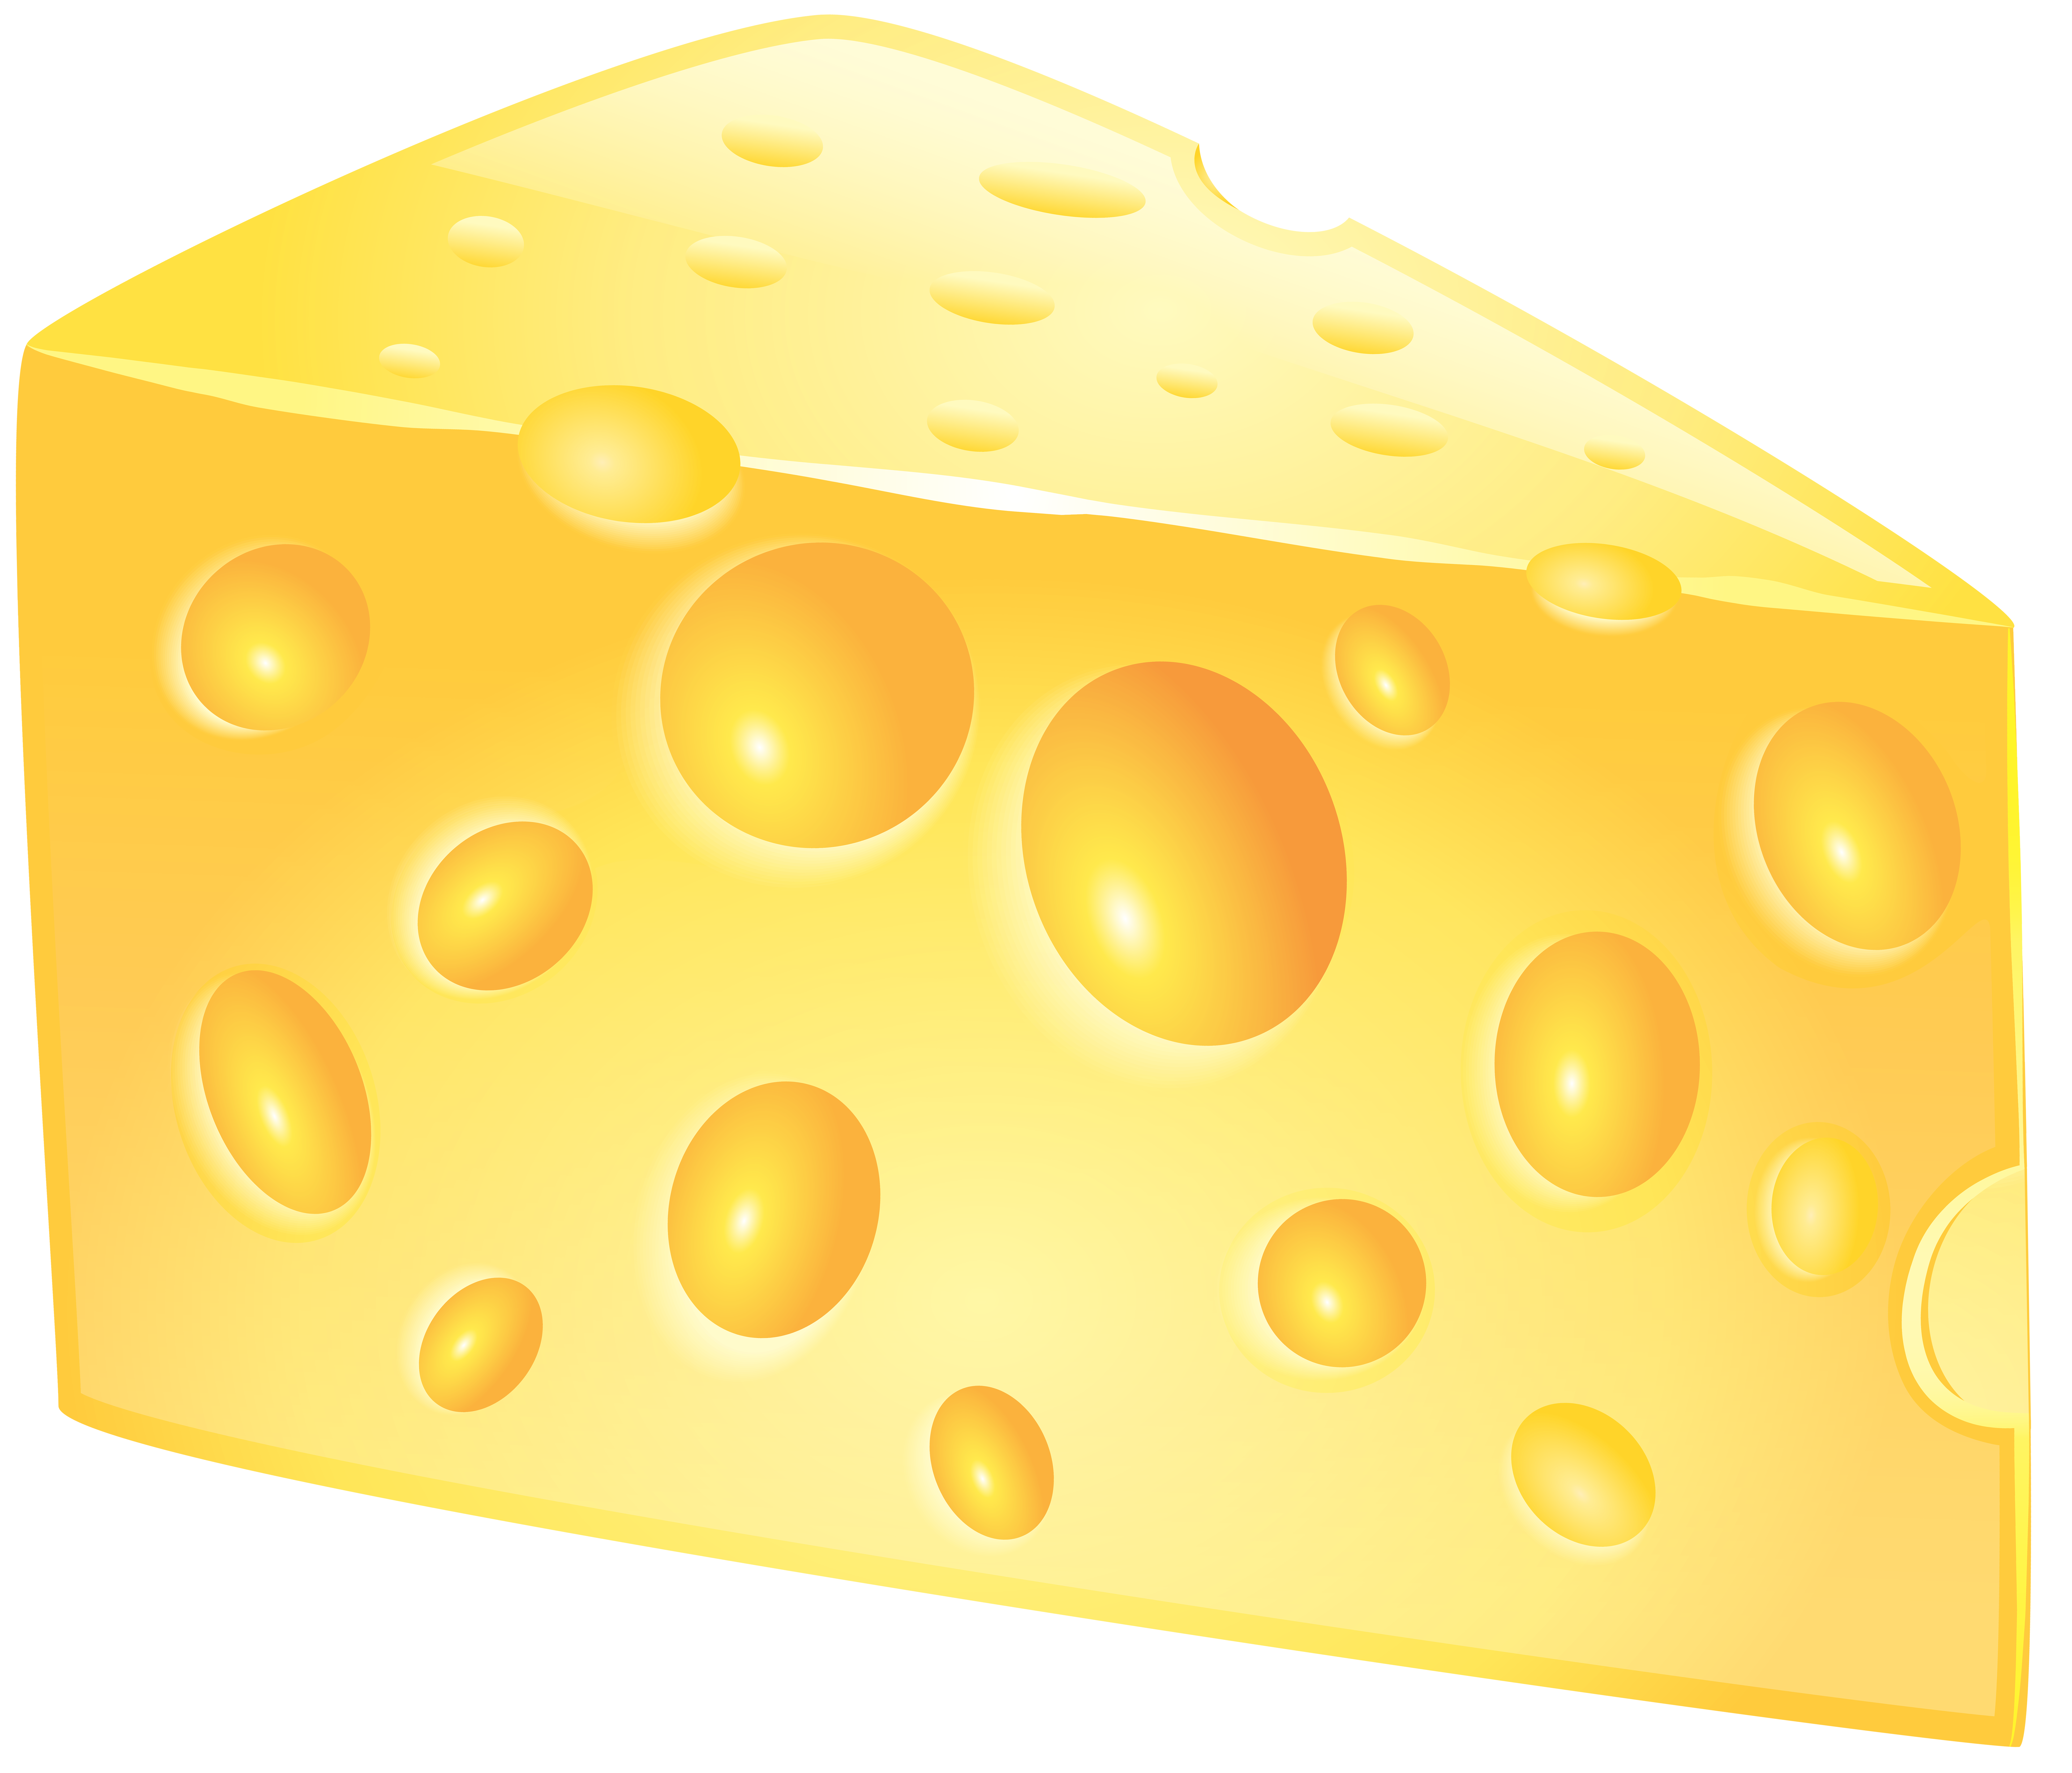 Grapes clipart cheese. Png clip art image